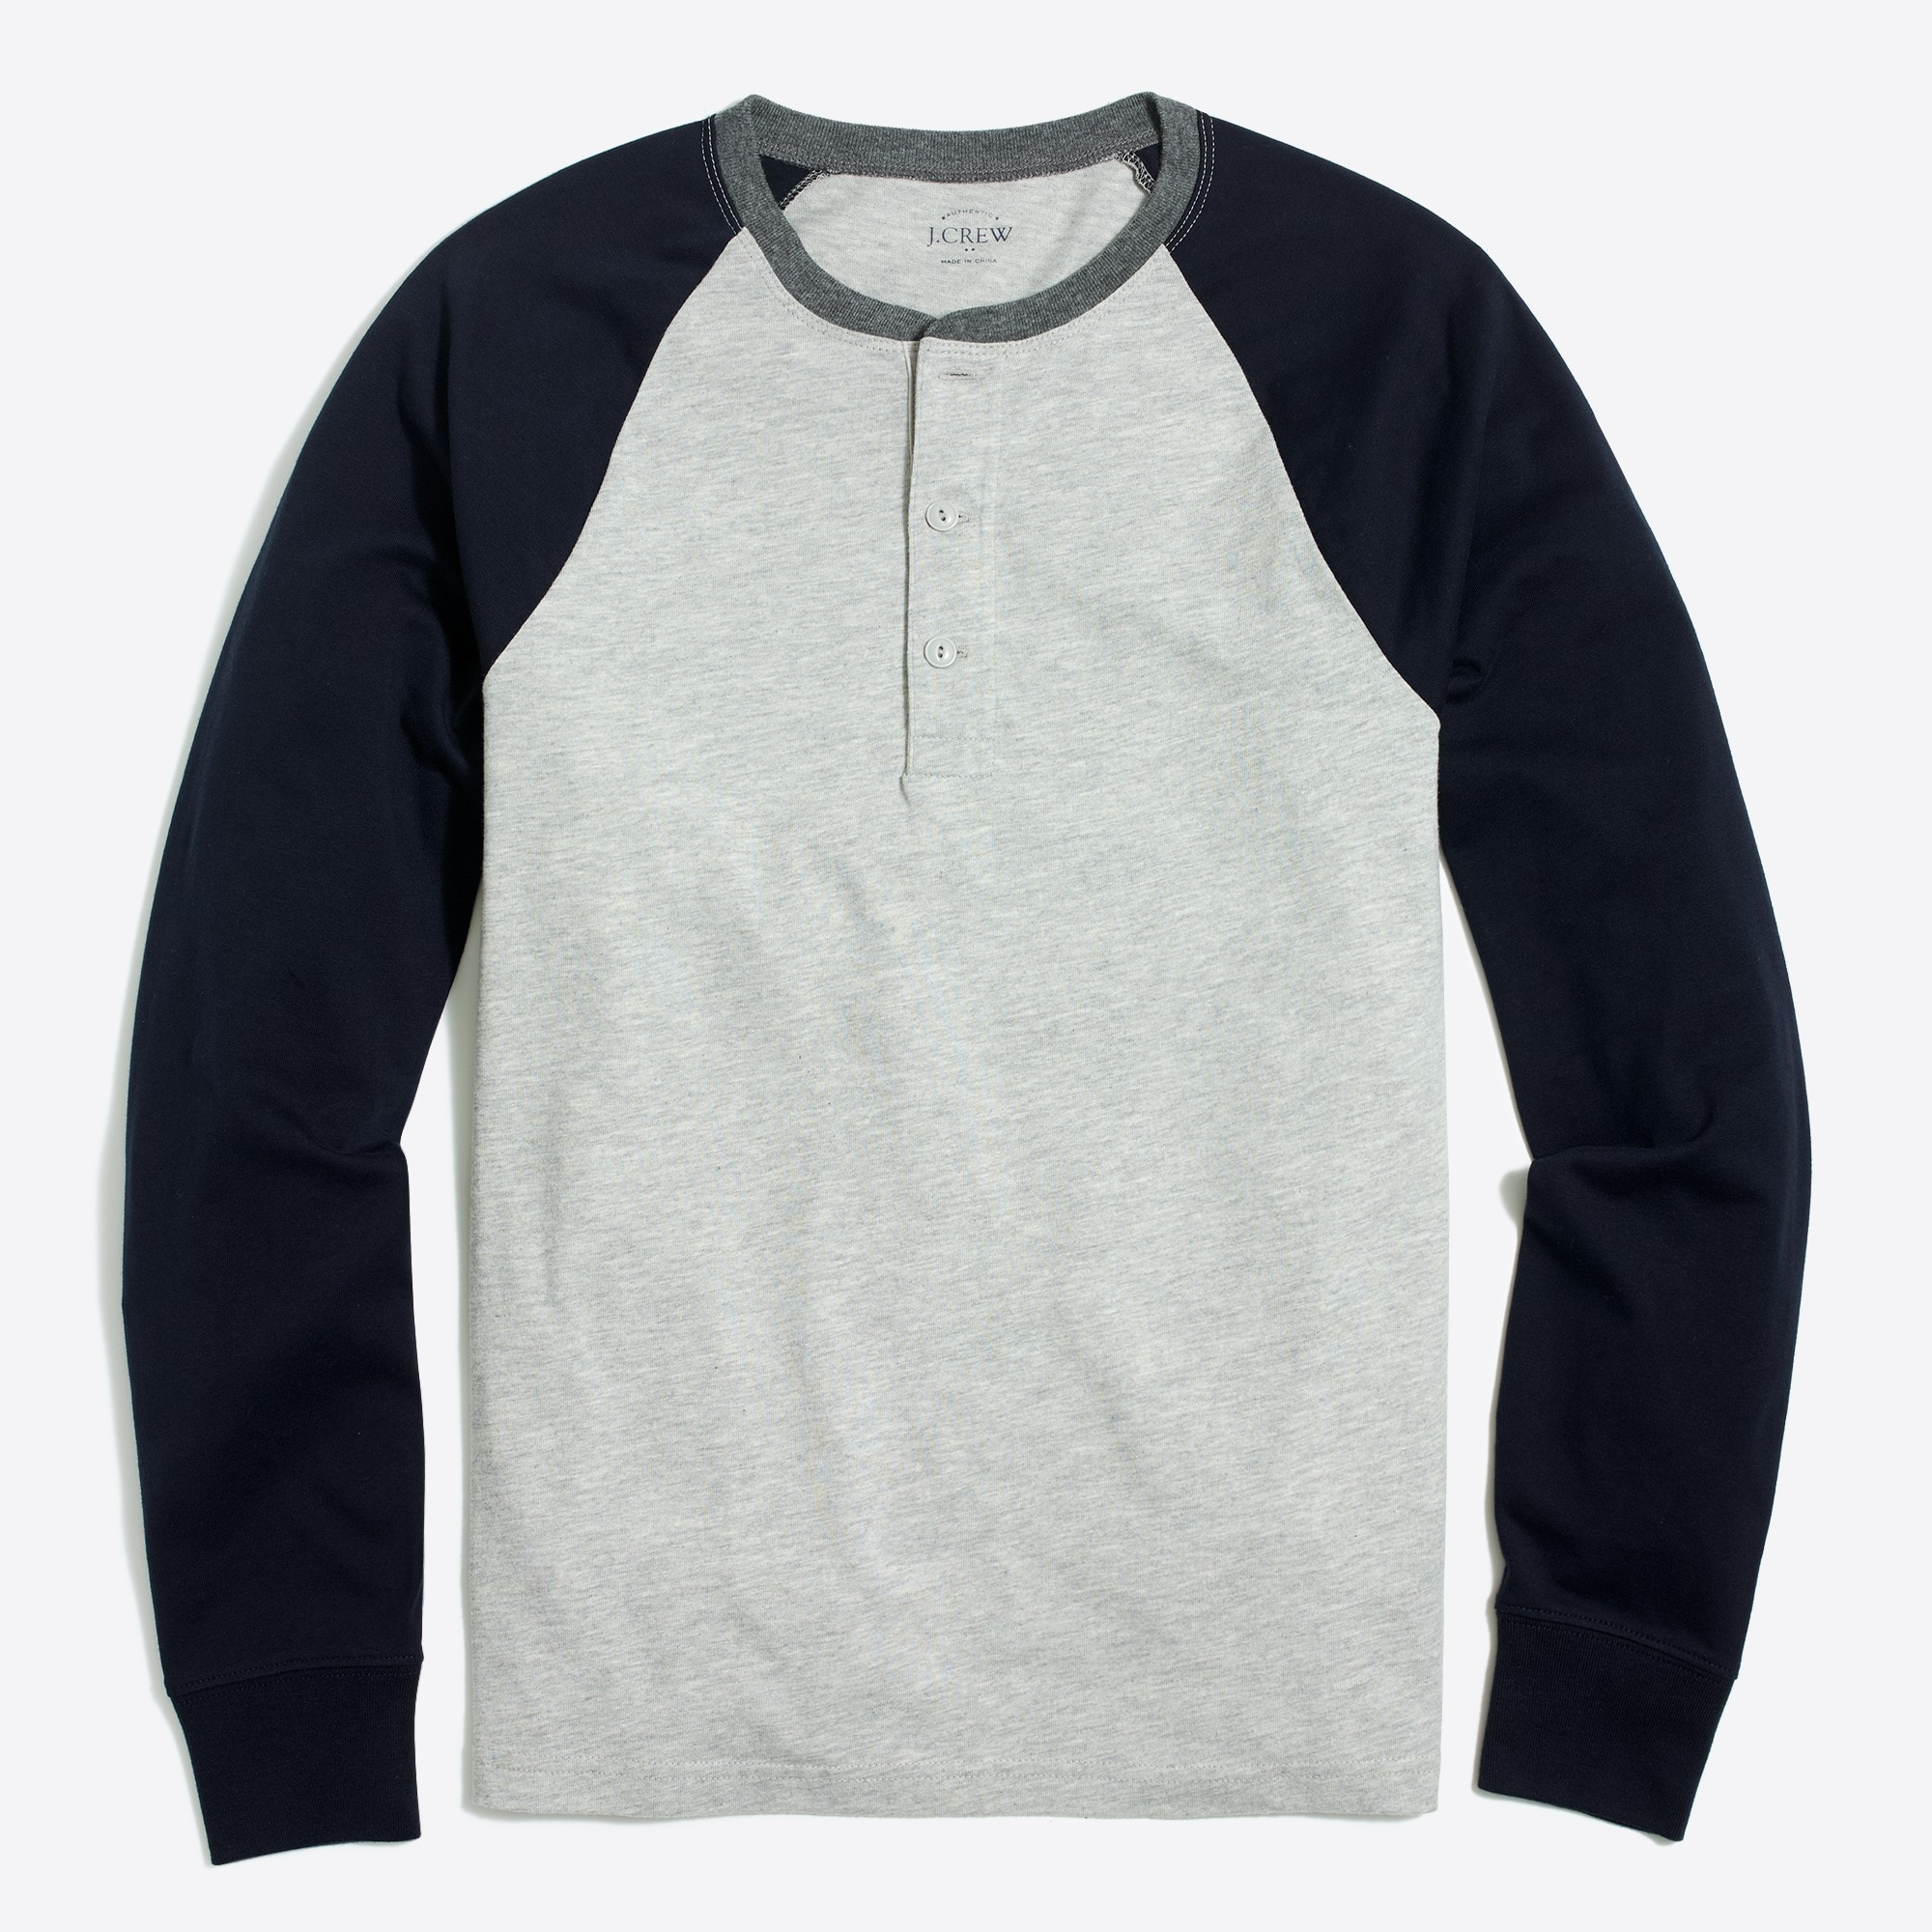 Image 1 for Long-sleeve baseball henley